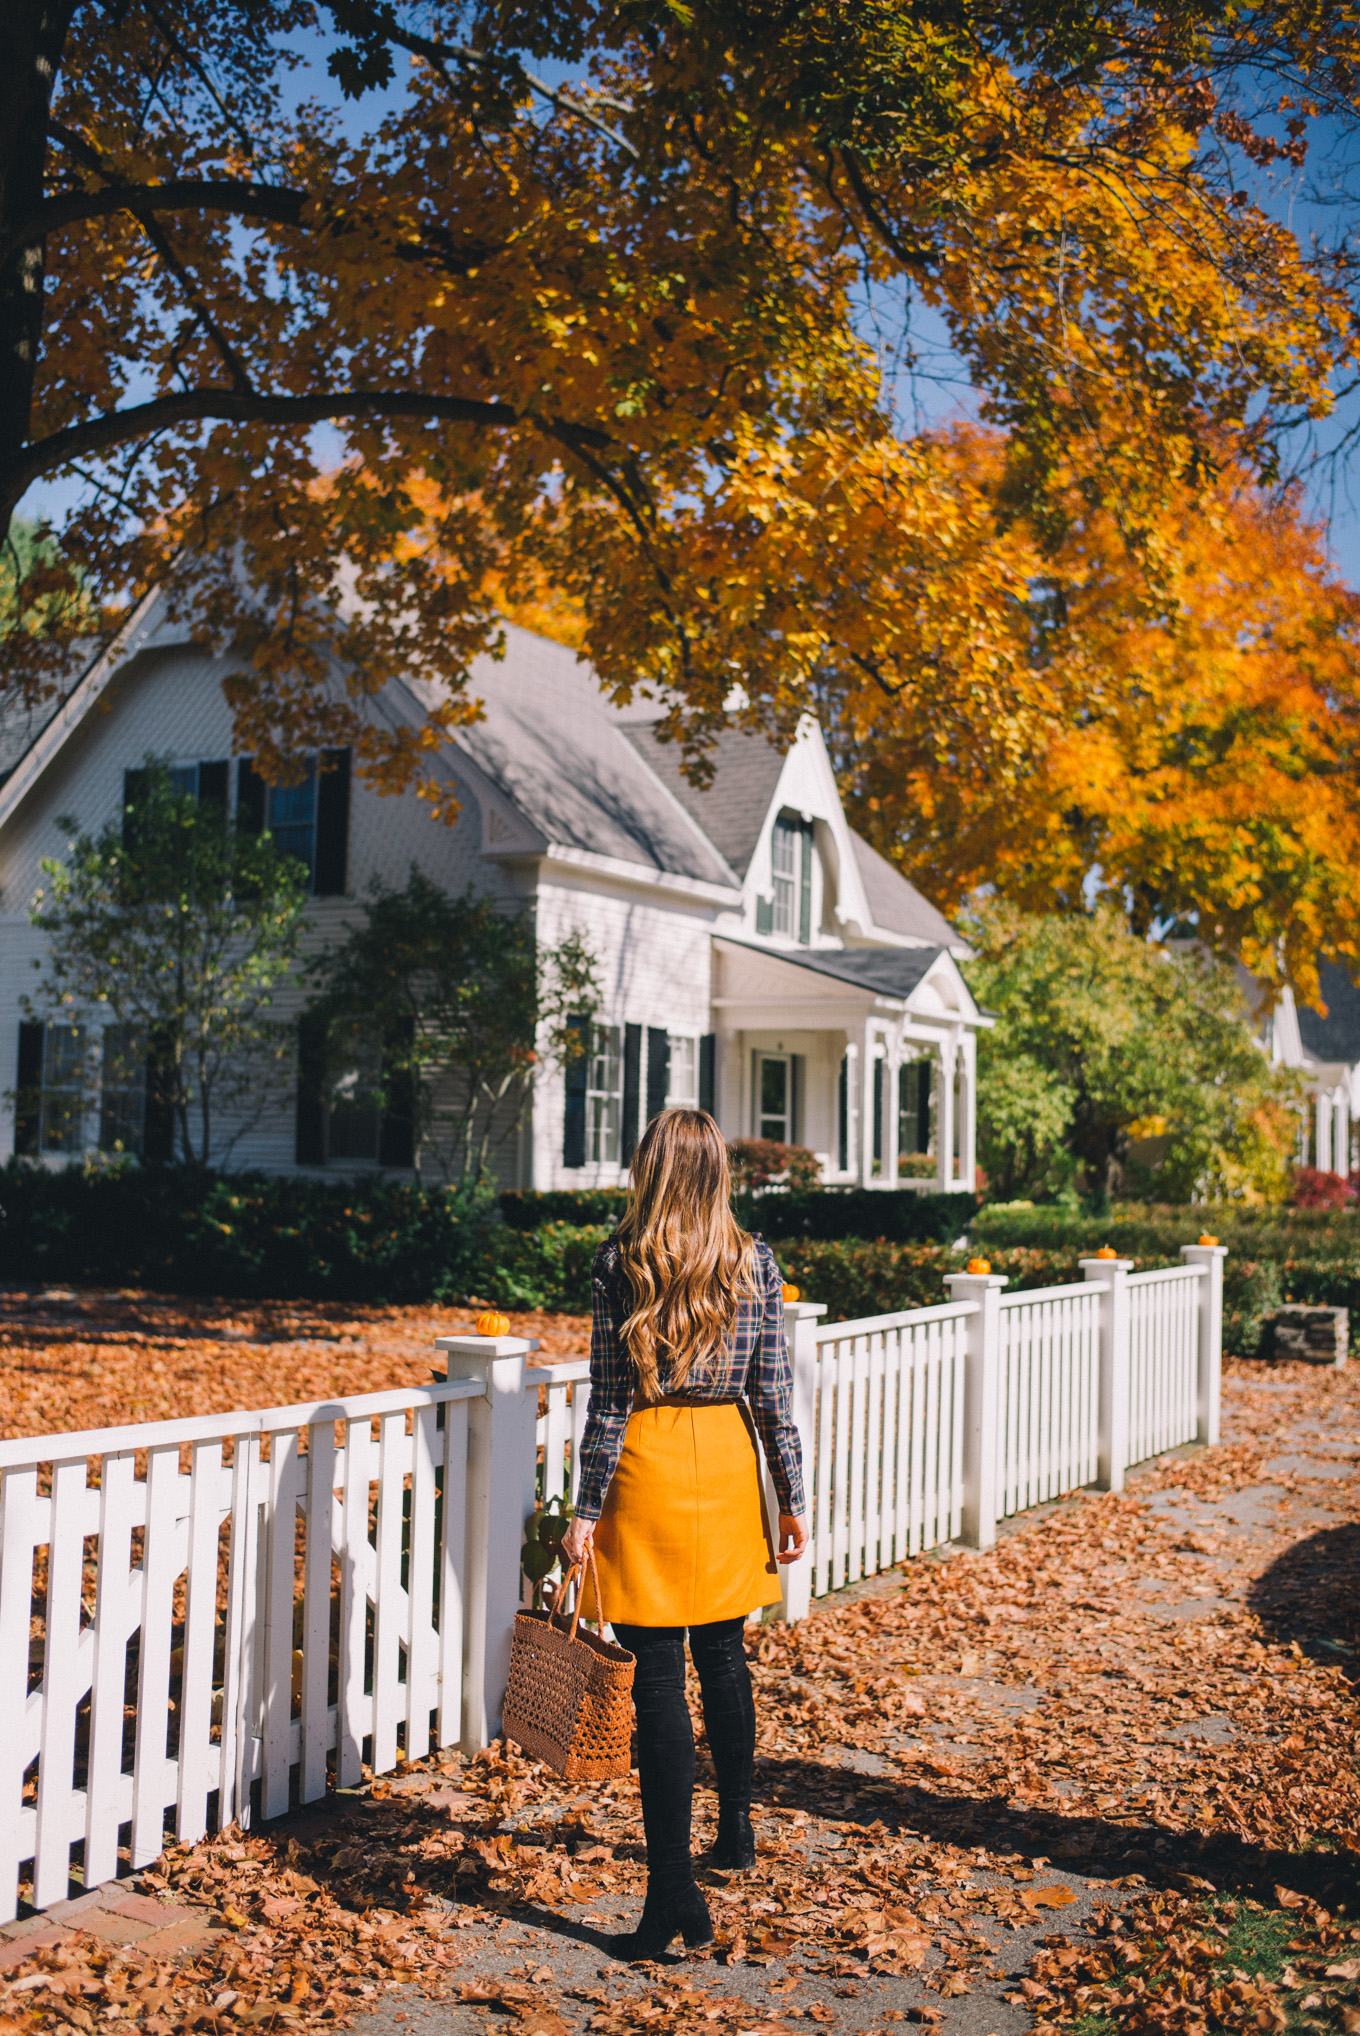 gmg-woodstock-vermont-fall-1002639